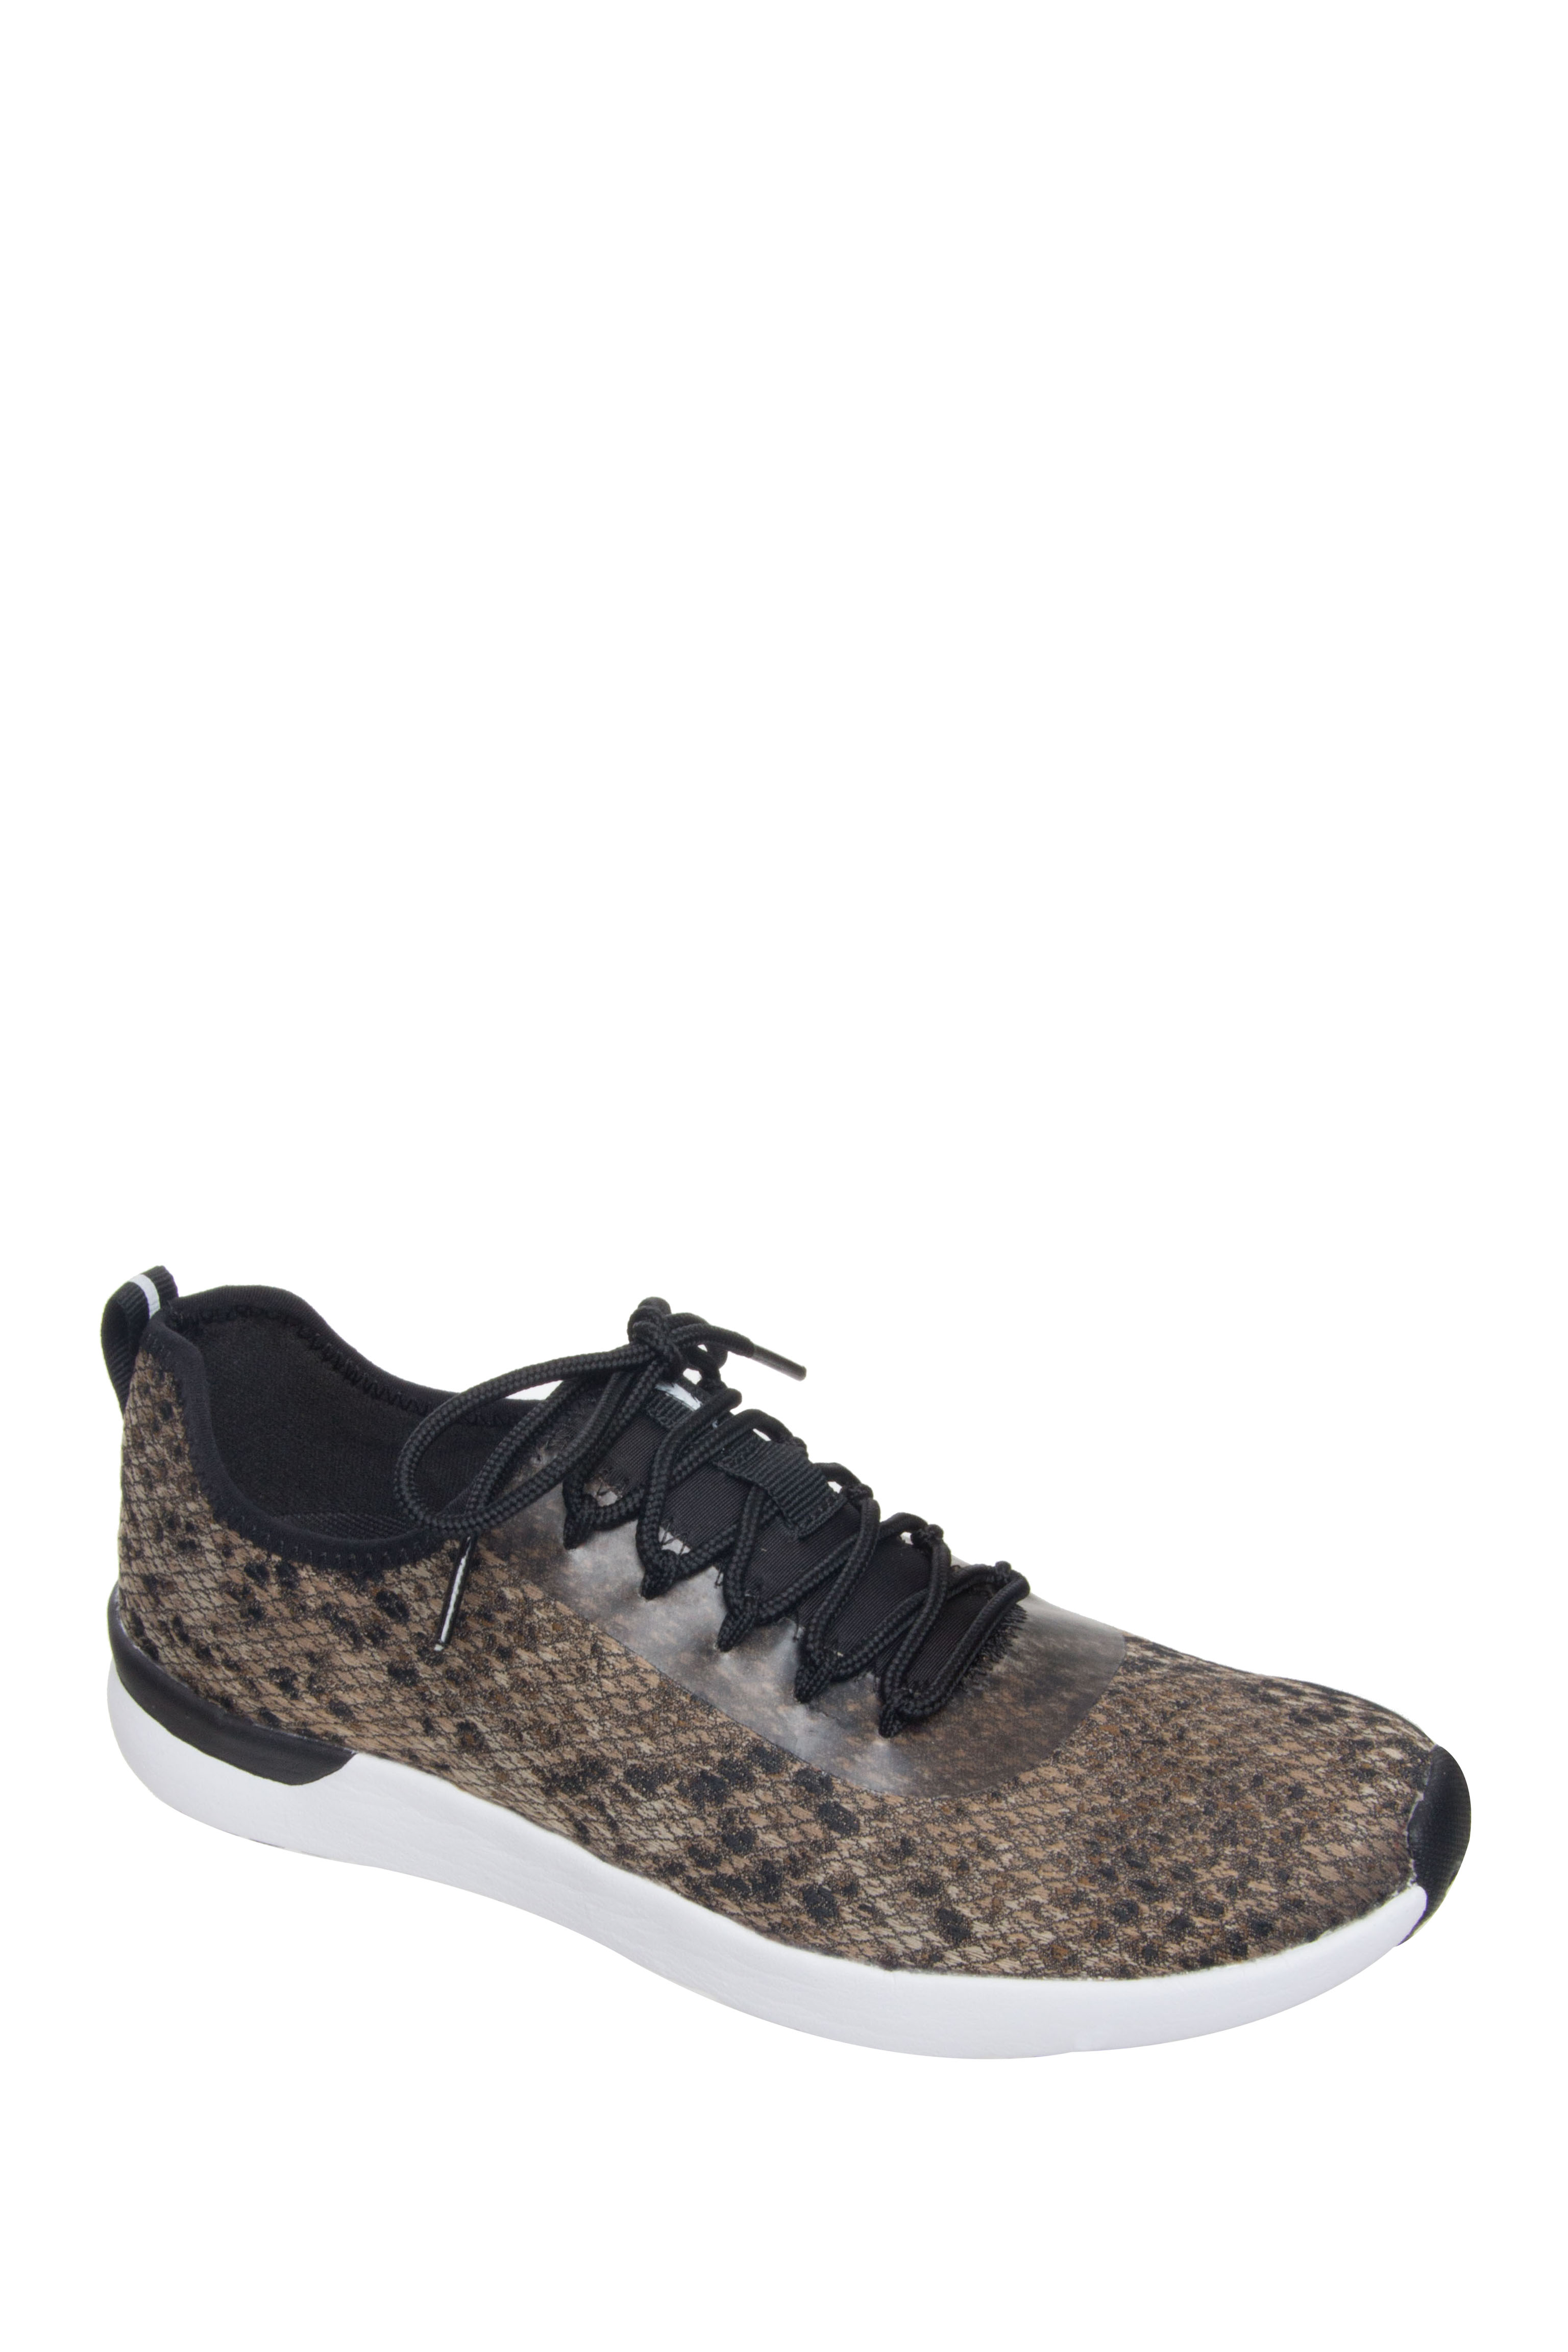 Jessica Simpson Farahh Low Top Sneakers - Natural Python